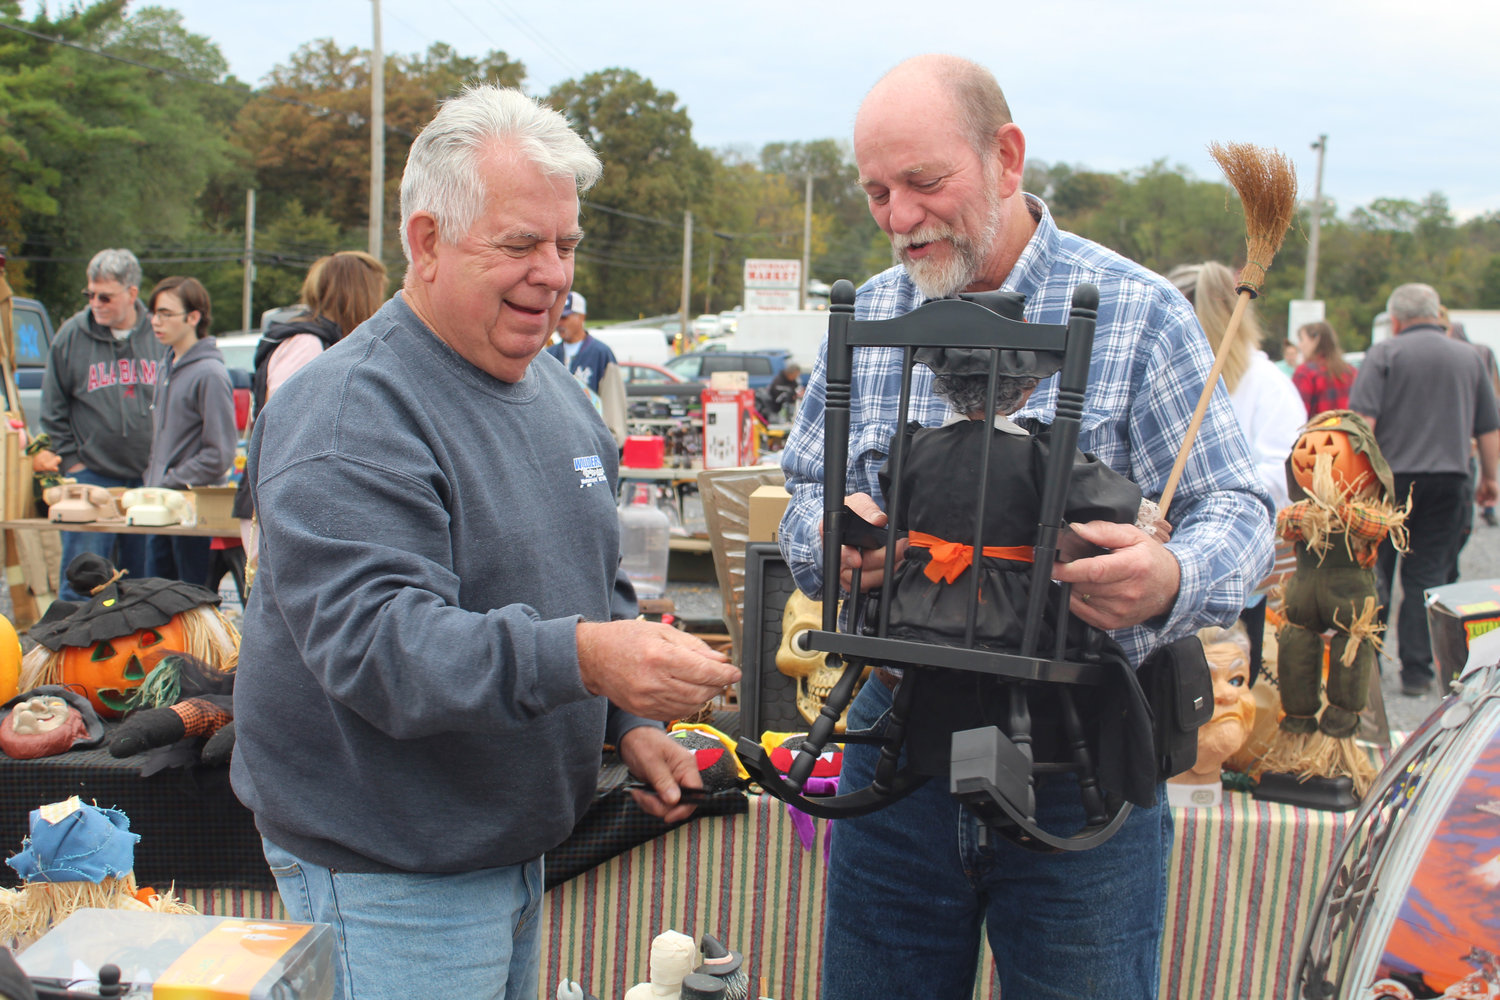 Steve Burns (right) considers buying Garry Willders' Halloween decoration on sale at Saturday's Market Oct. 12.